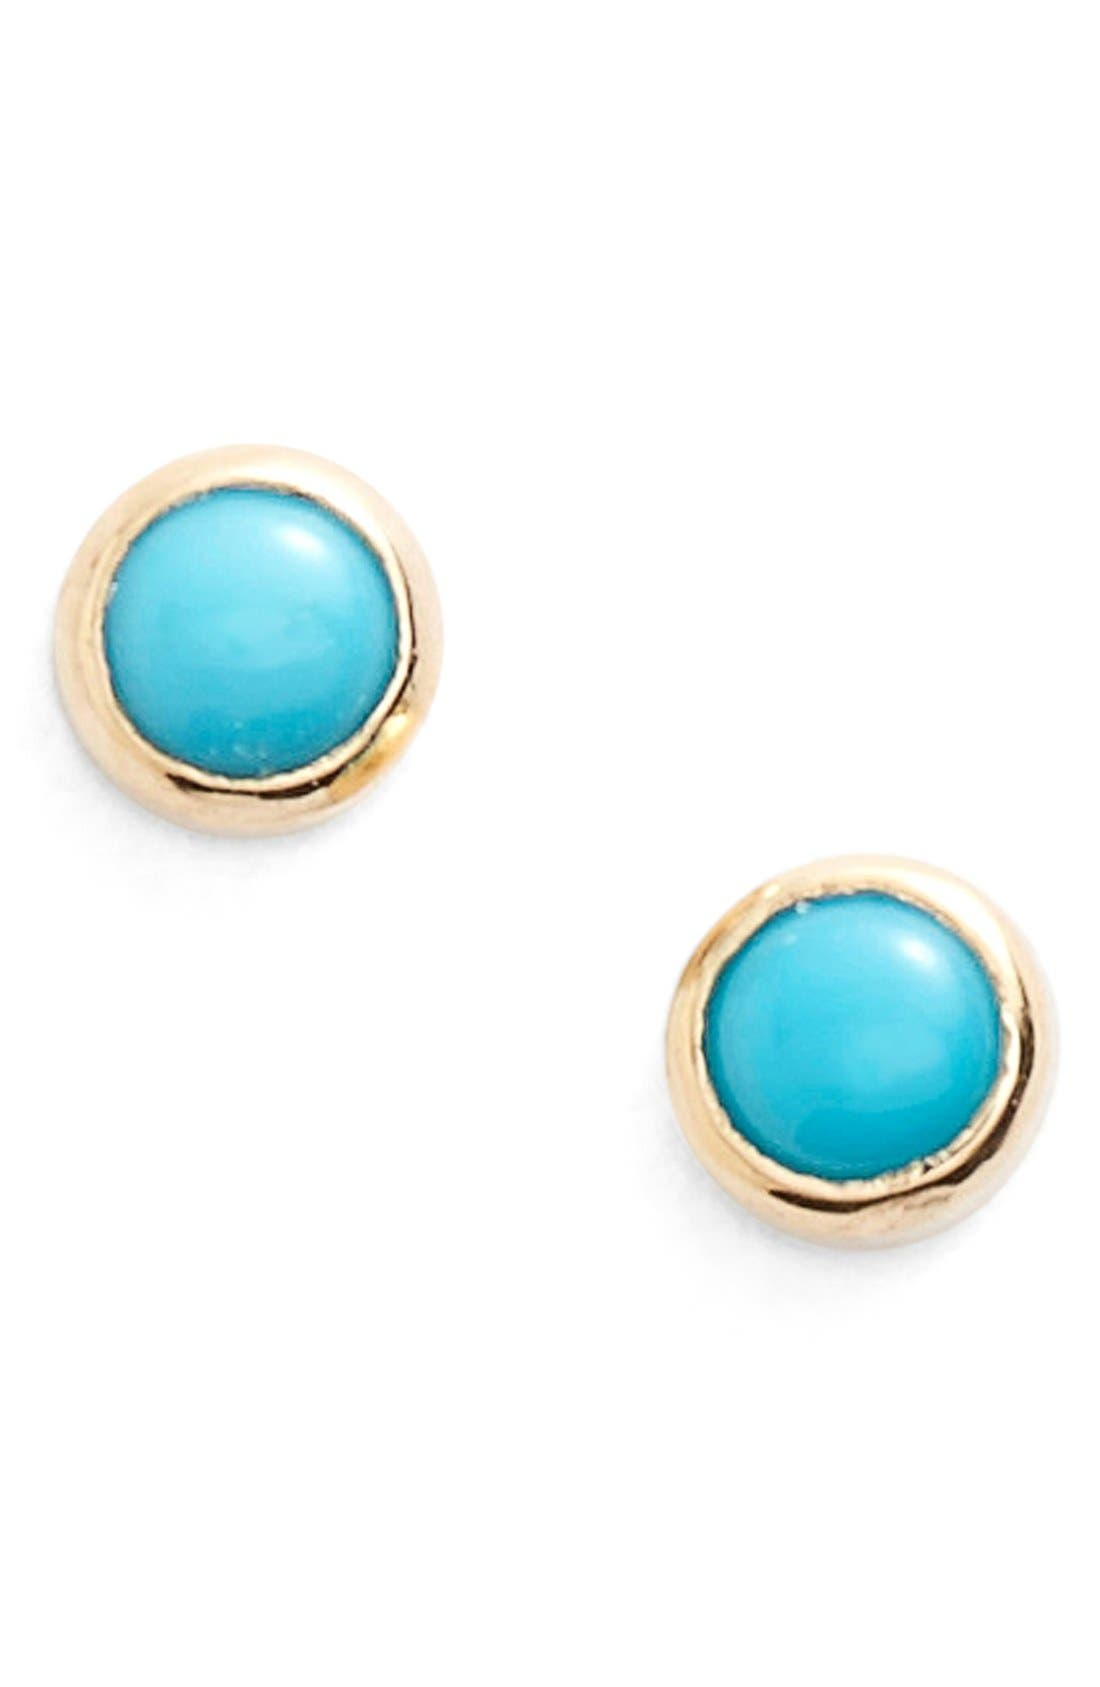 ZOË CHICCO Turquoise Stud Earrings